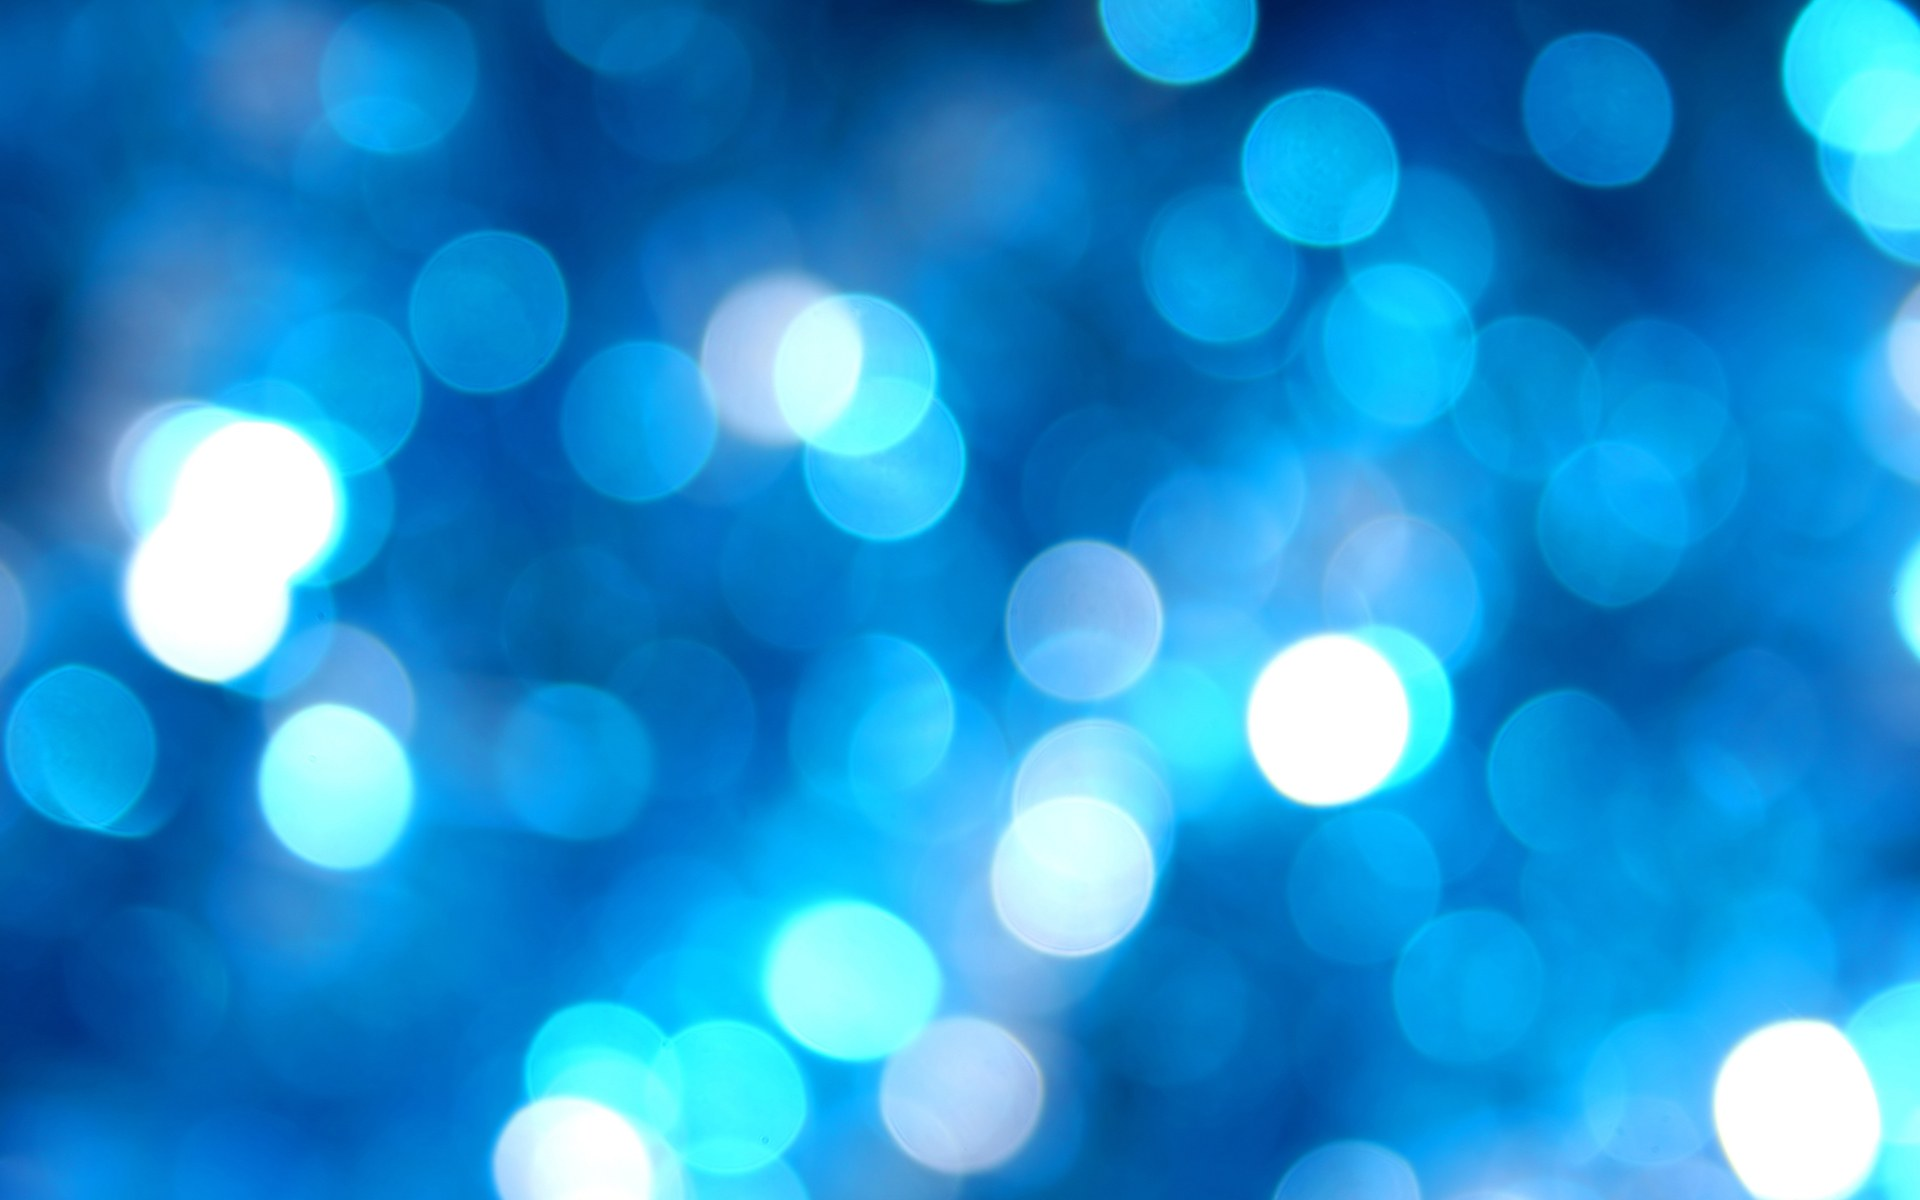 Blue Abstract HD Wallpapers Blue Abstract high quality and 1920x1200